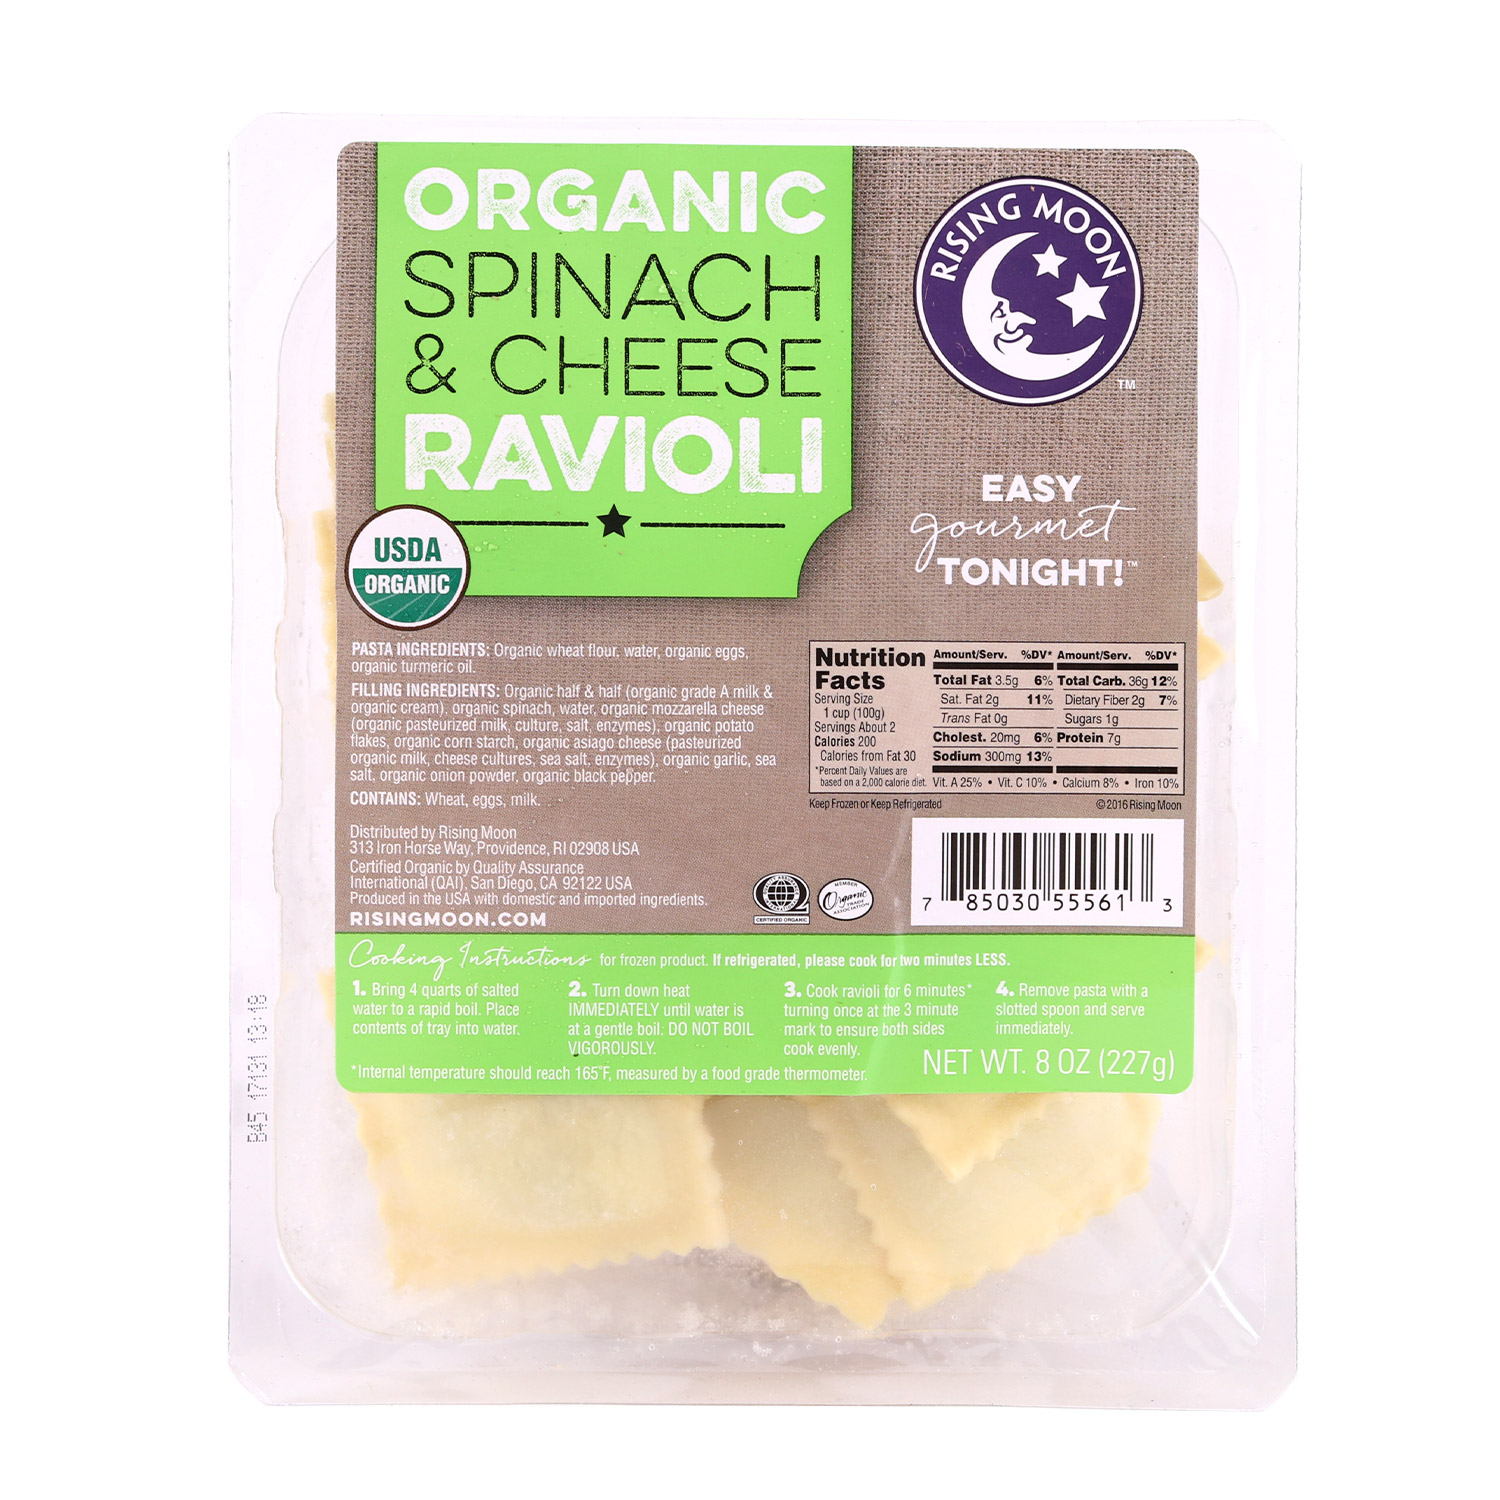 Ravioli, Spinach & Cheese-Organic